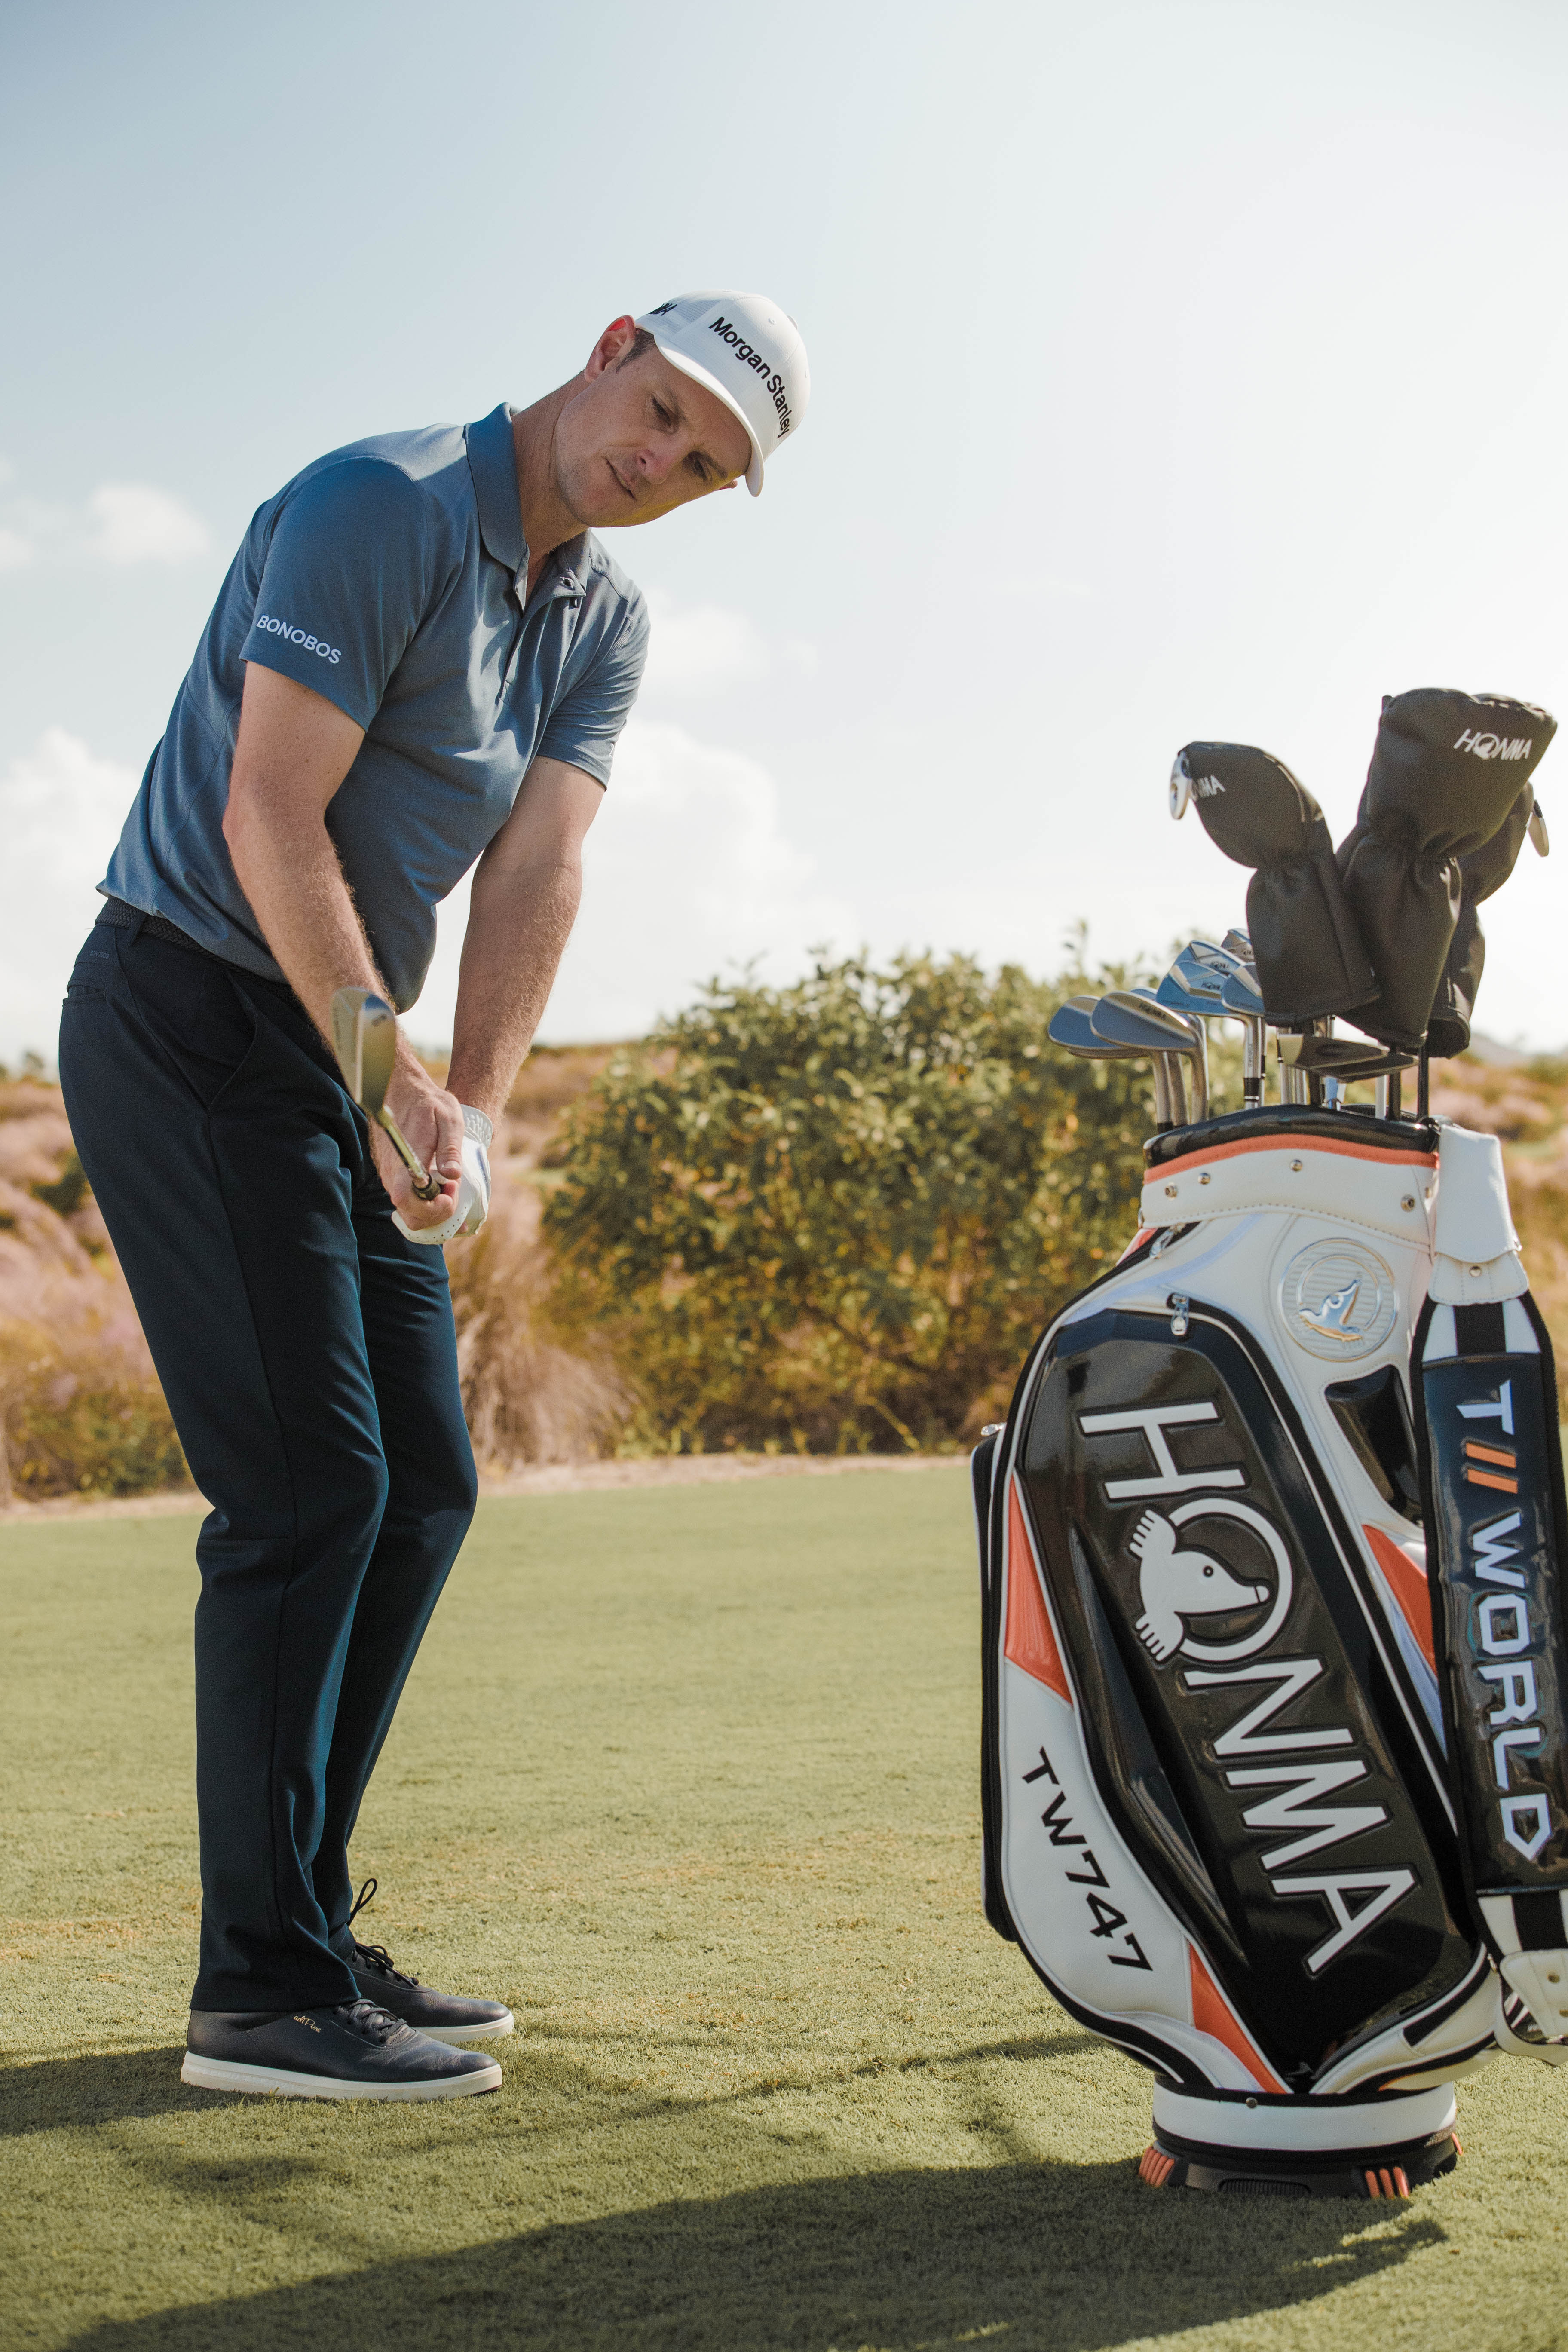 Justin Rose reinforces No 1 status with new Honma clubs